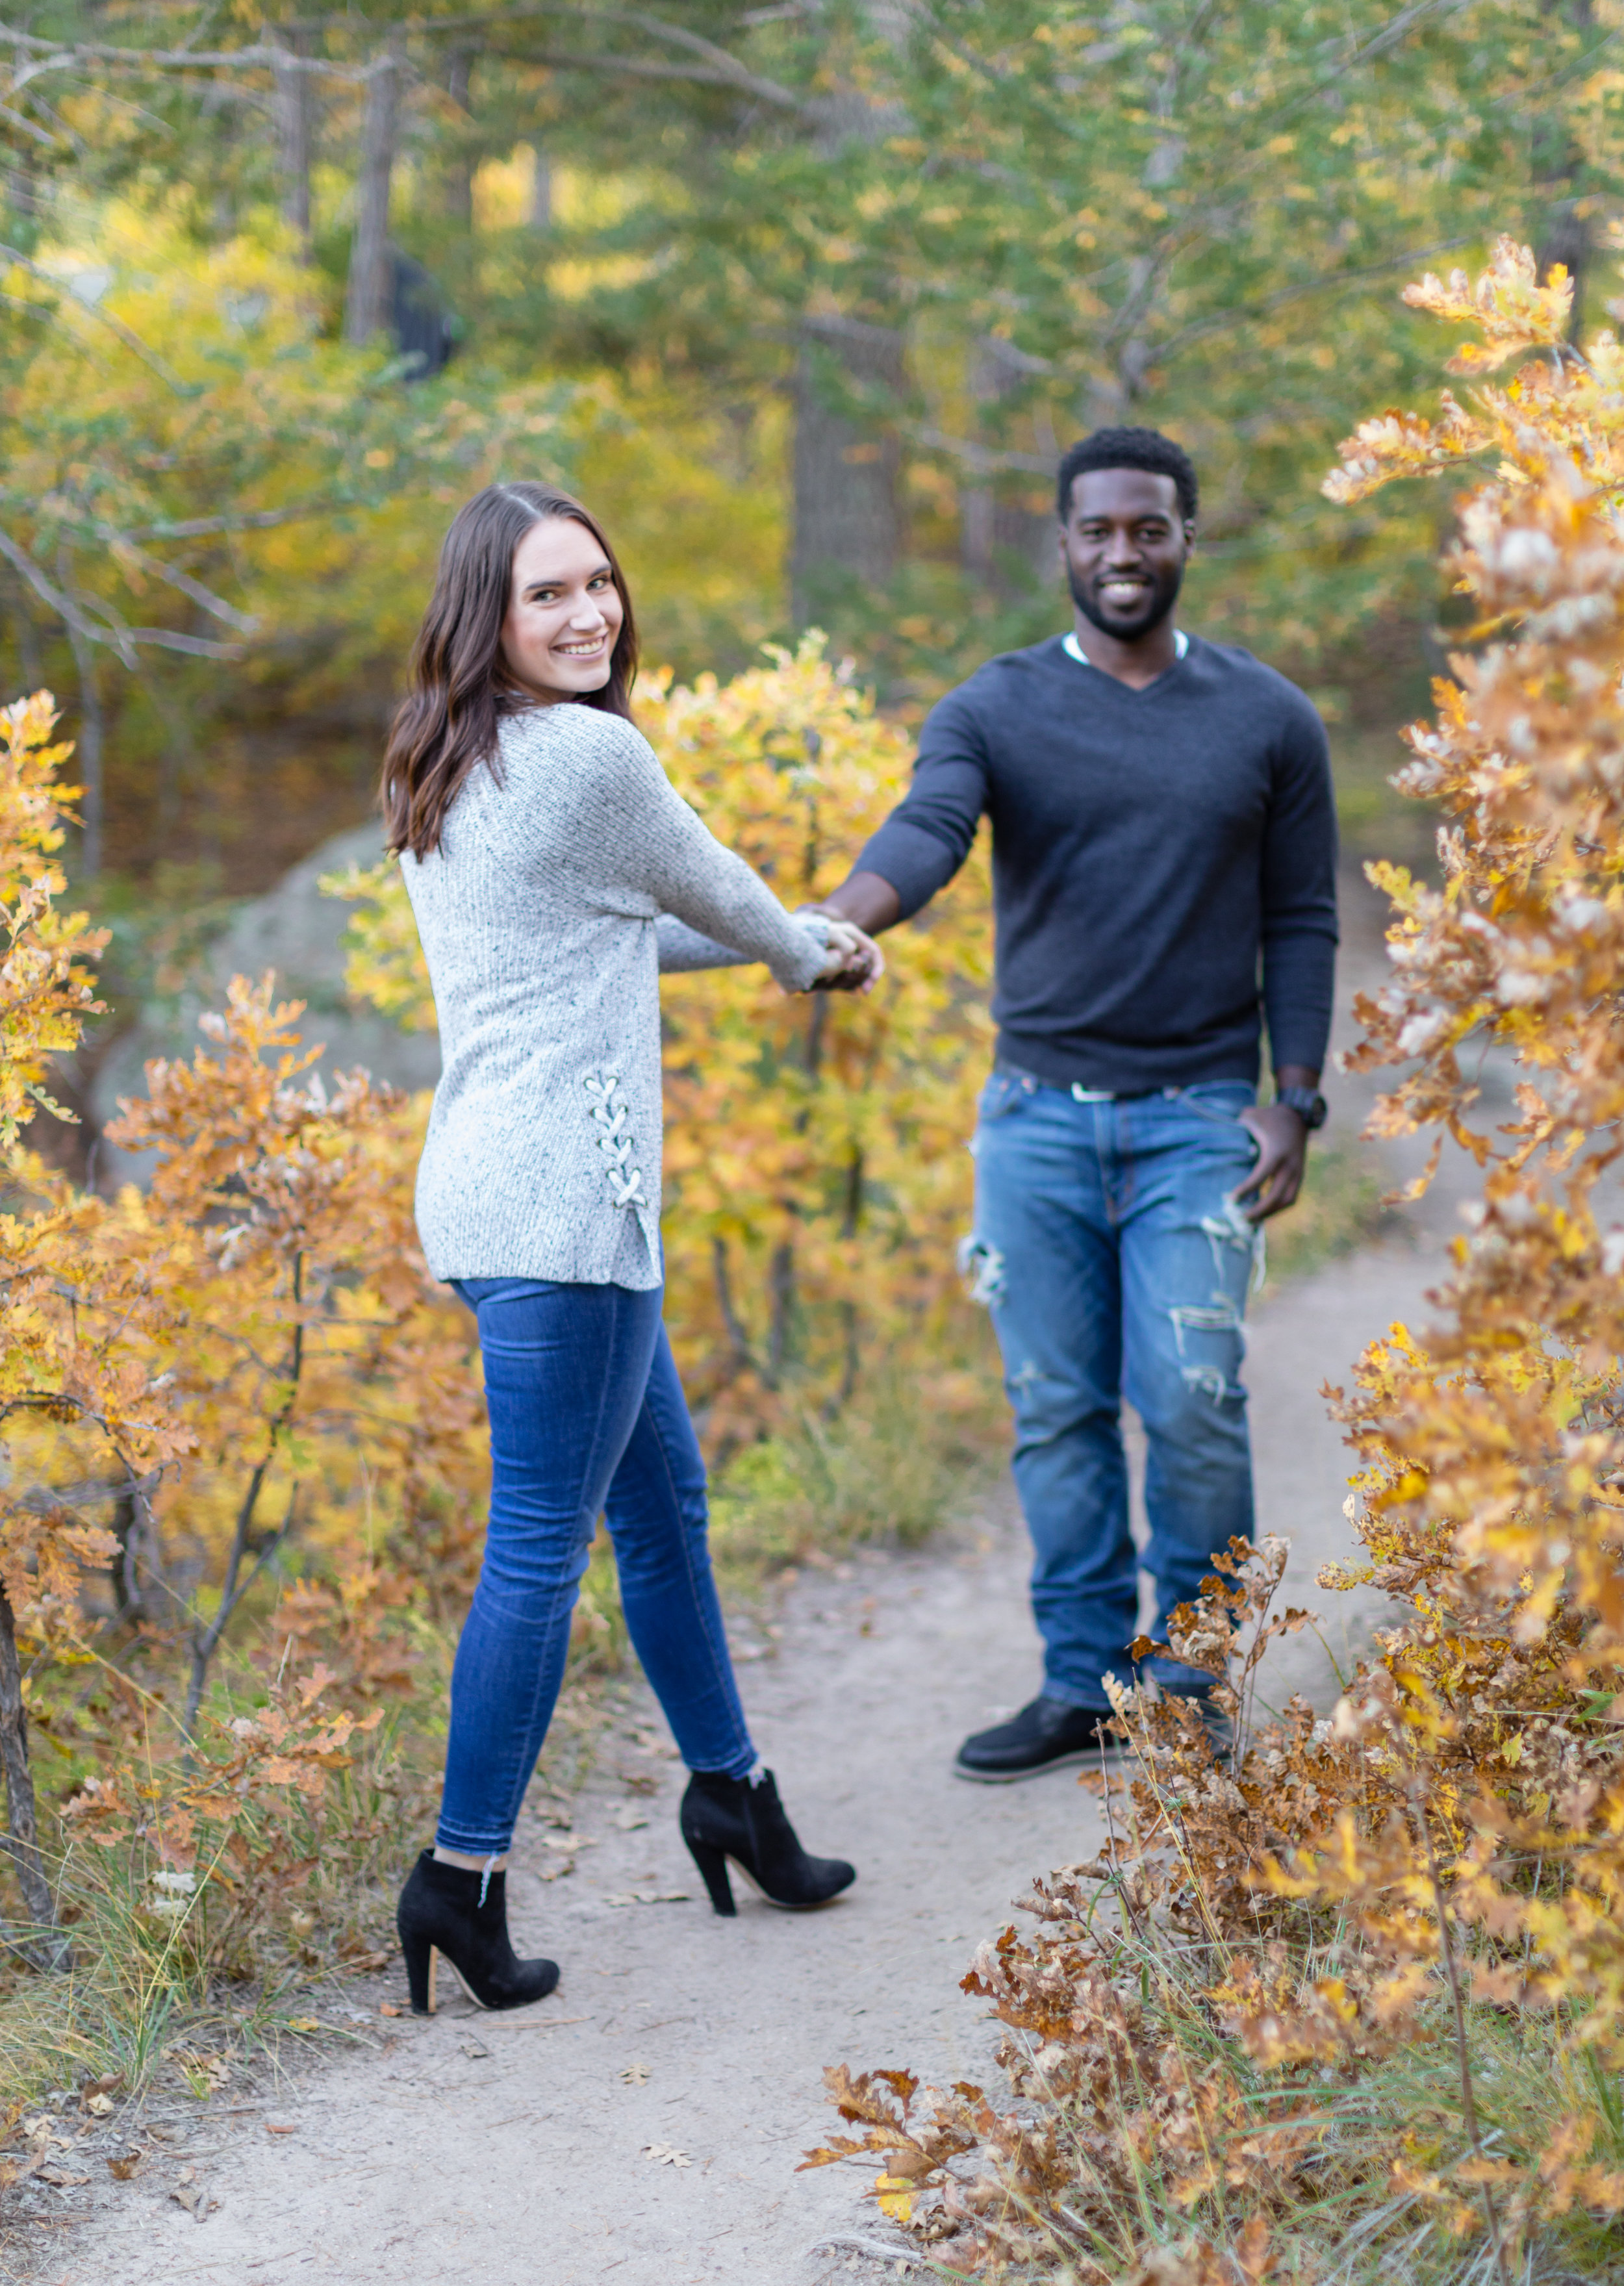 Kara T. - Cody is an excellent photographer, he has shot family photos & engagement photos for us and they always turn out so amazing and beautiful! What really sets him apart is his patience and attention to detail. I cannot say enough great things about our photos done by Cody!